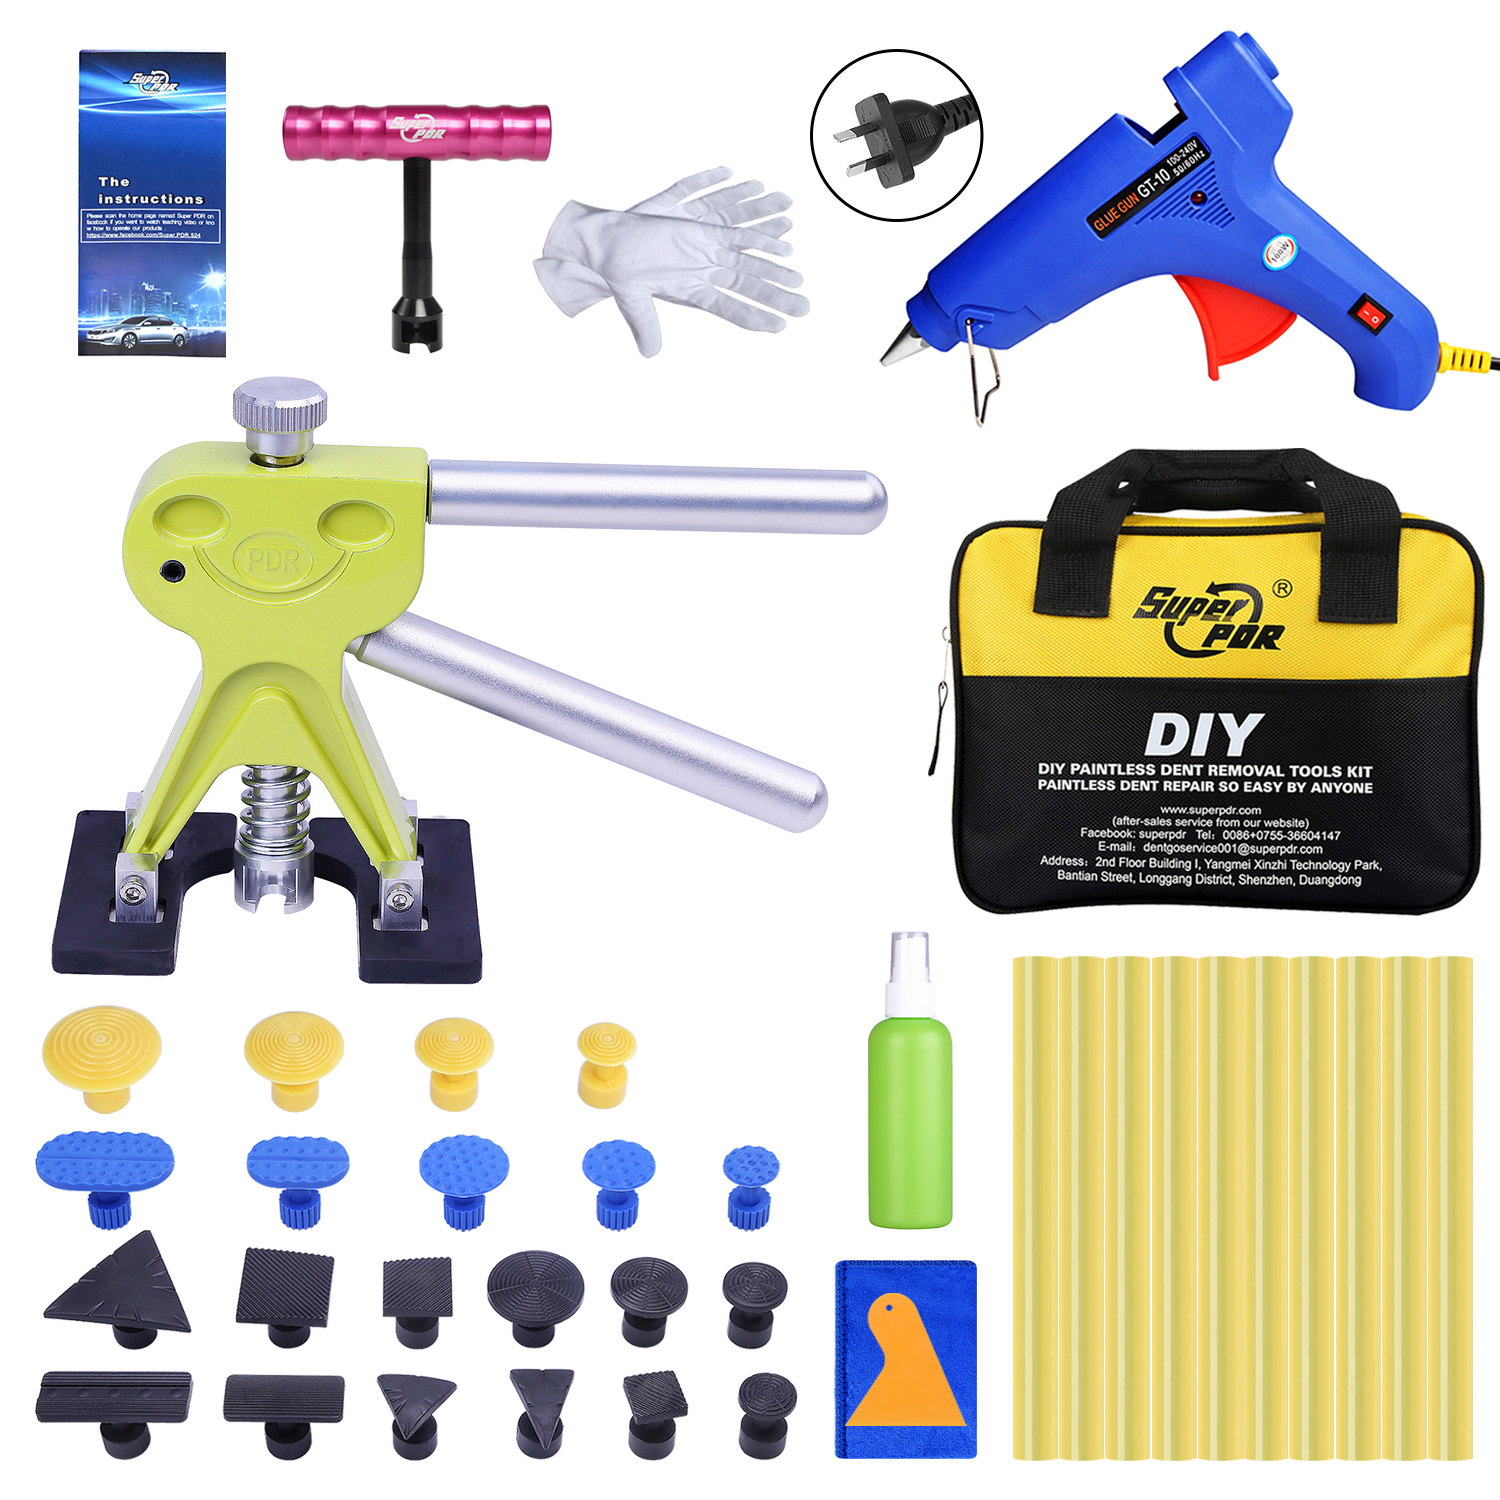 Super PDR AU Plug Hot Melt Glue Gun For Hot Adhesive Glue Stick Auto Dent Puller Suction Cup Glue Tab Paintless Dent Removal Kit super pdr tools dent removal kit for car dent puller suction cup glue sticks for hot melt glue gun line board pump wedge air bag